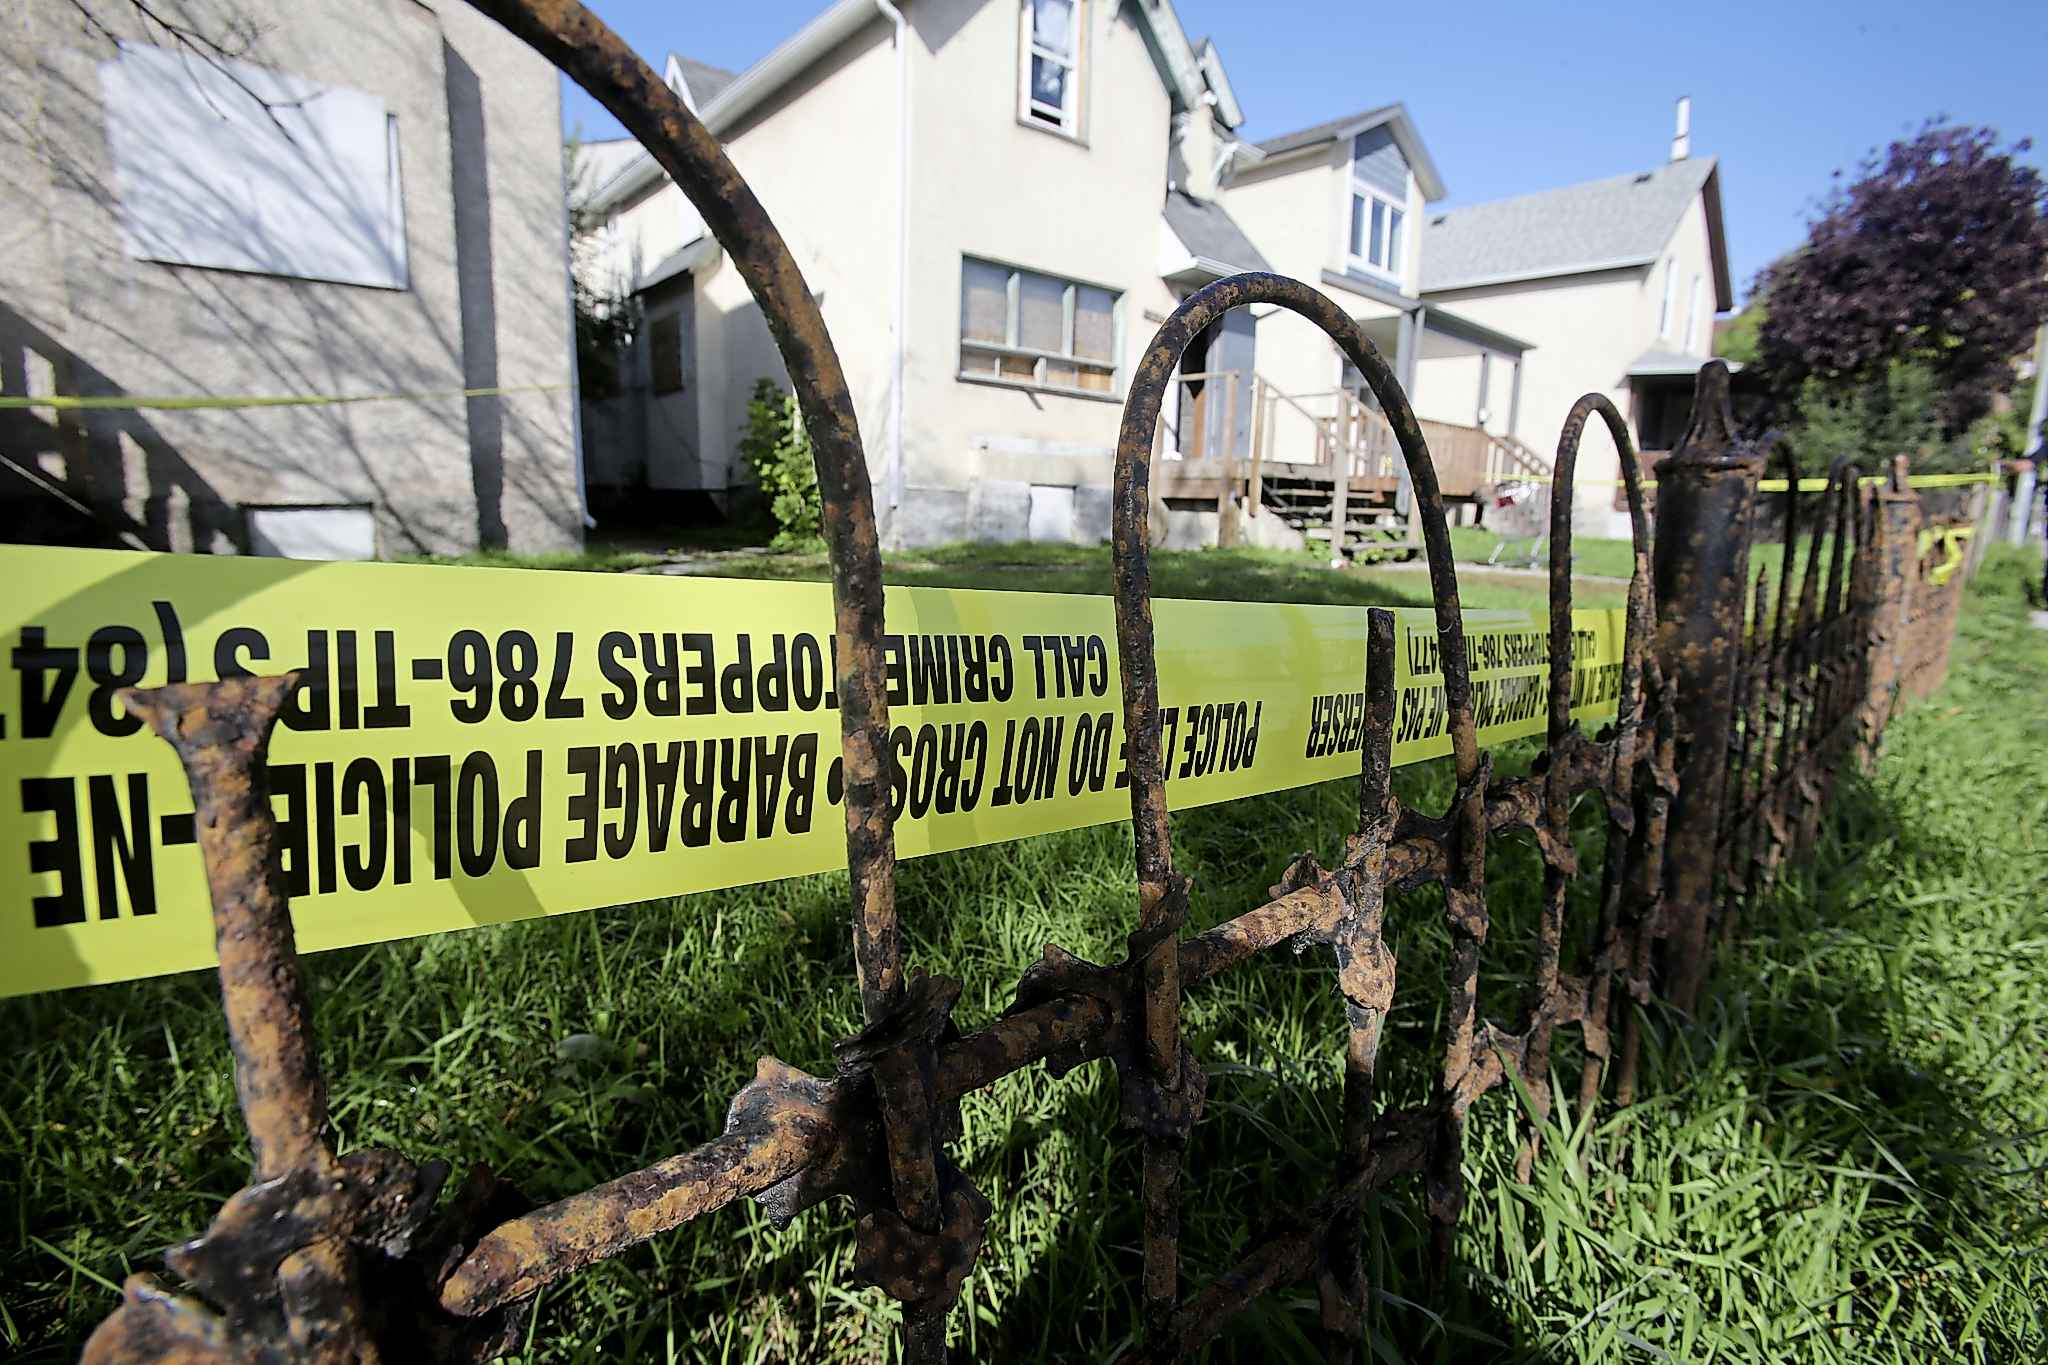 Police tape surrounds a residence at 574 Balmoral Street where the city's 29th homicide of the year took place in September 2019. (Shannon VanRaes / Winnipeg Free Press files)